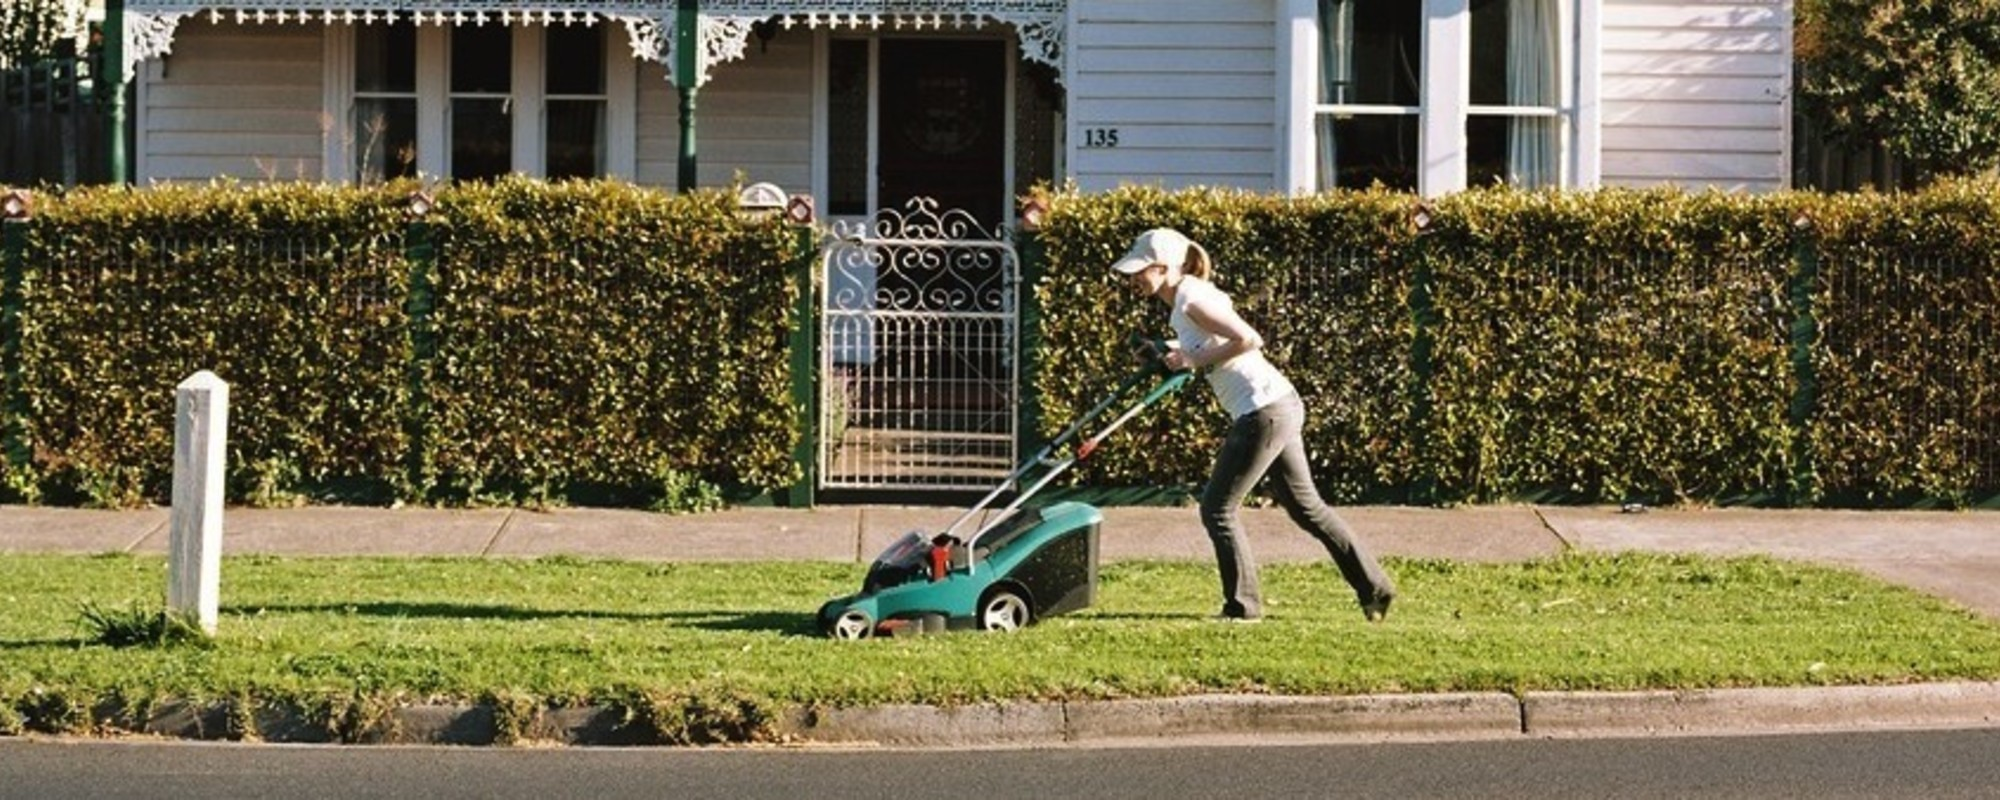 Mowing the Dream